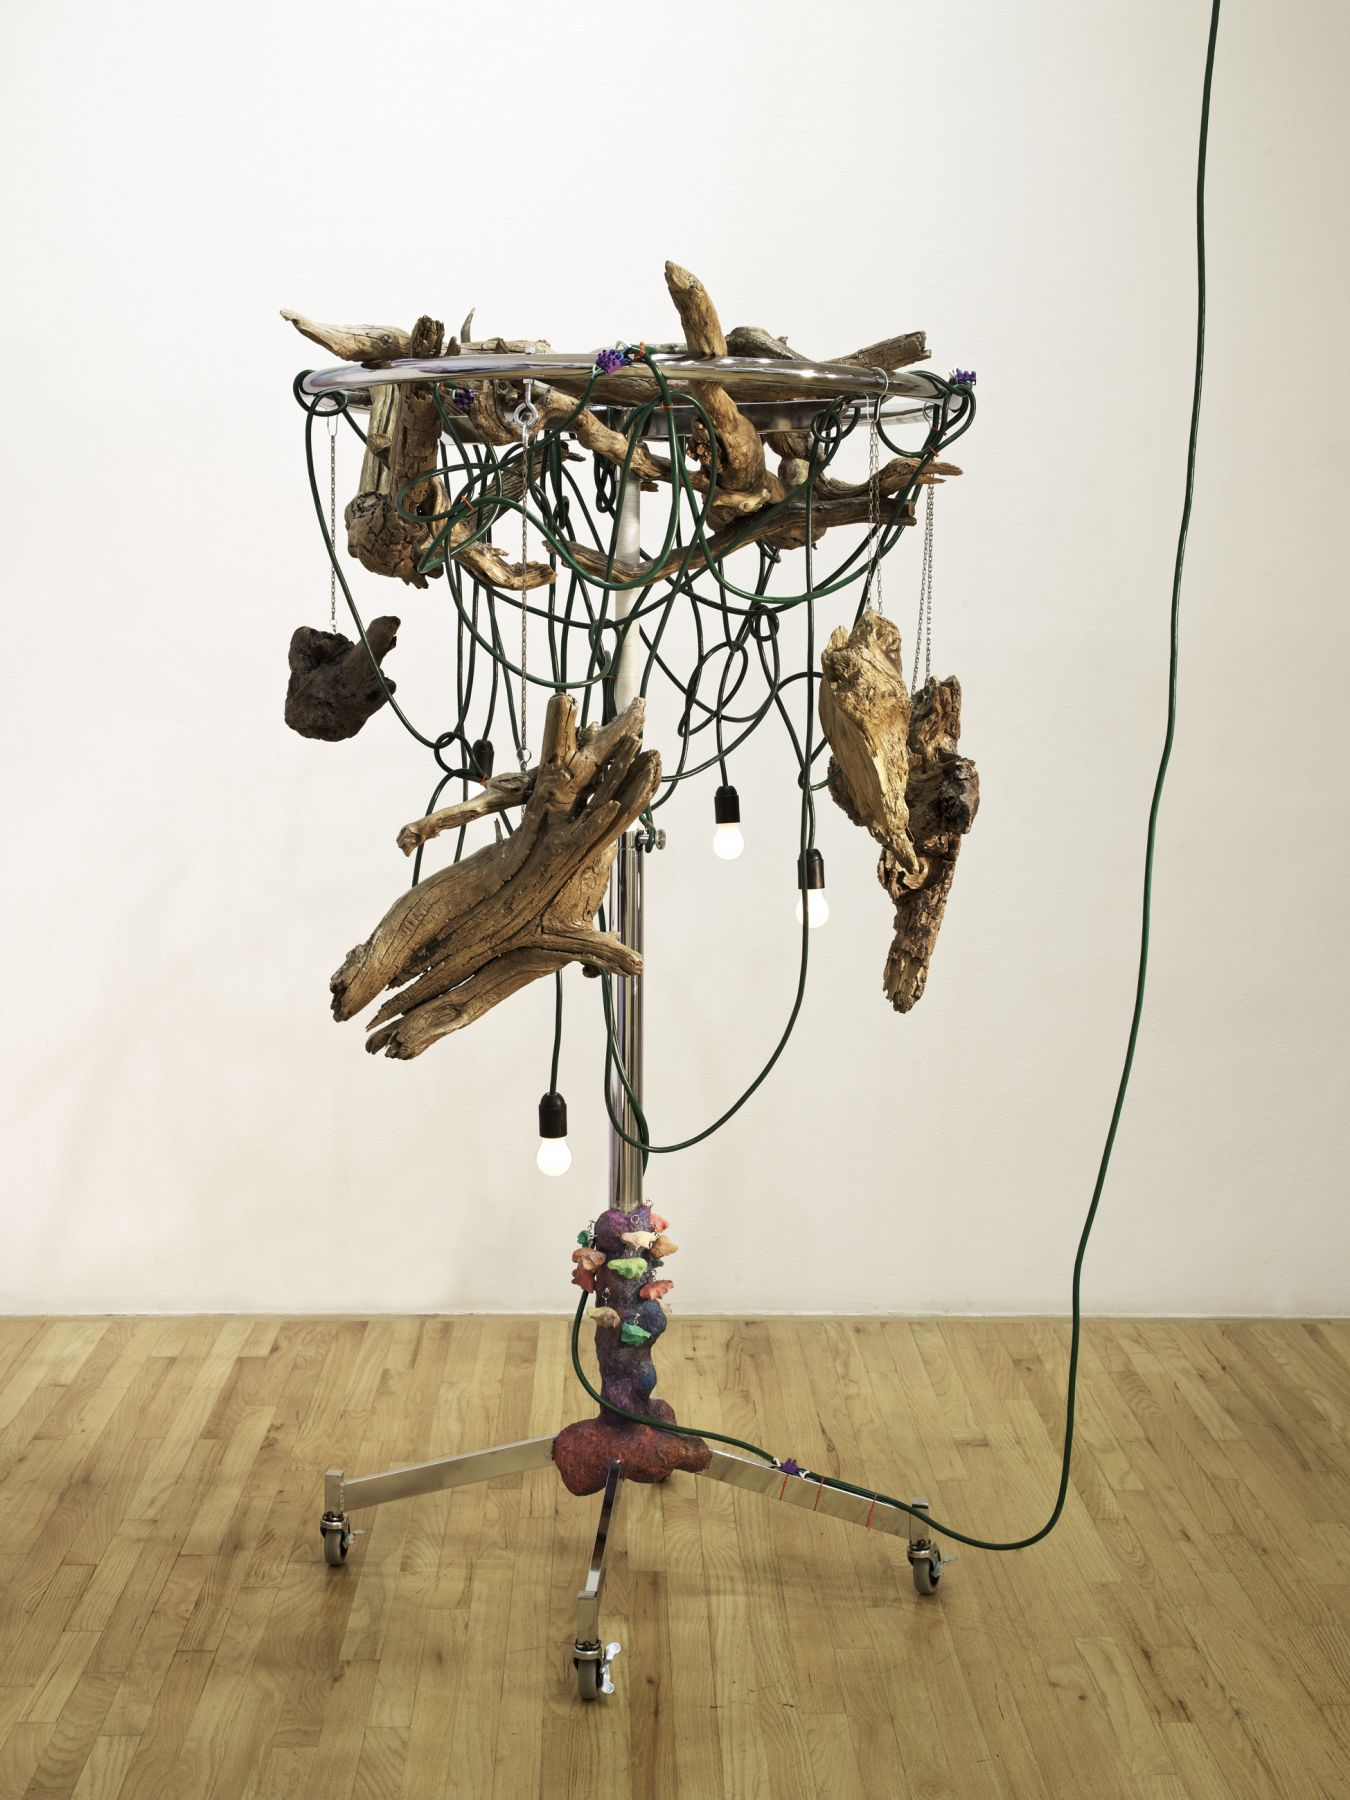 Haegue Yang Wild in Aspen: Giant Fingers, 2011 Round clothing rack (chrome) on casters, light bulbs (frosted), electric cable,chain, nylon cord, key rings, varnish, shower curtain holders, papier mache, and driftwood 75 1/4 x 45 x 44 5/8 inches 191.1 x 114.3 x 113.3 cm